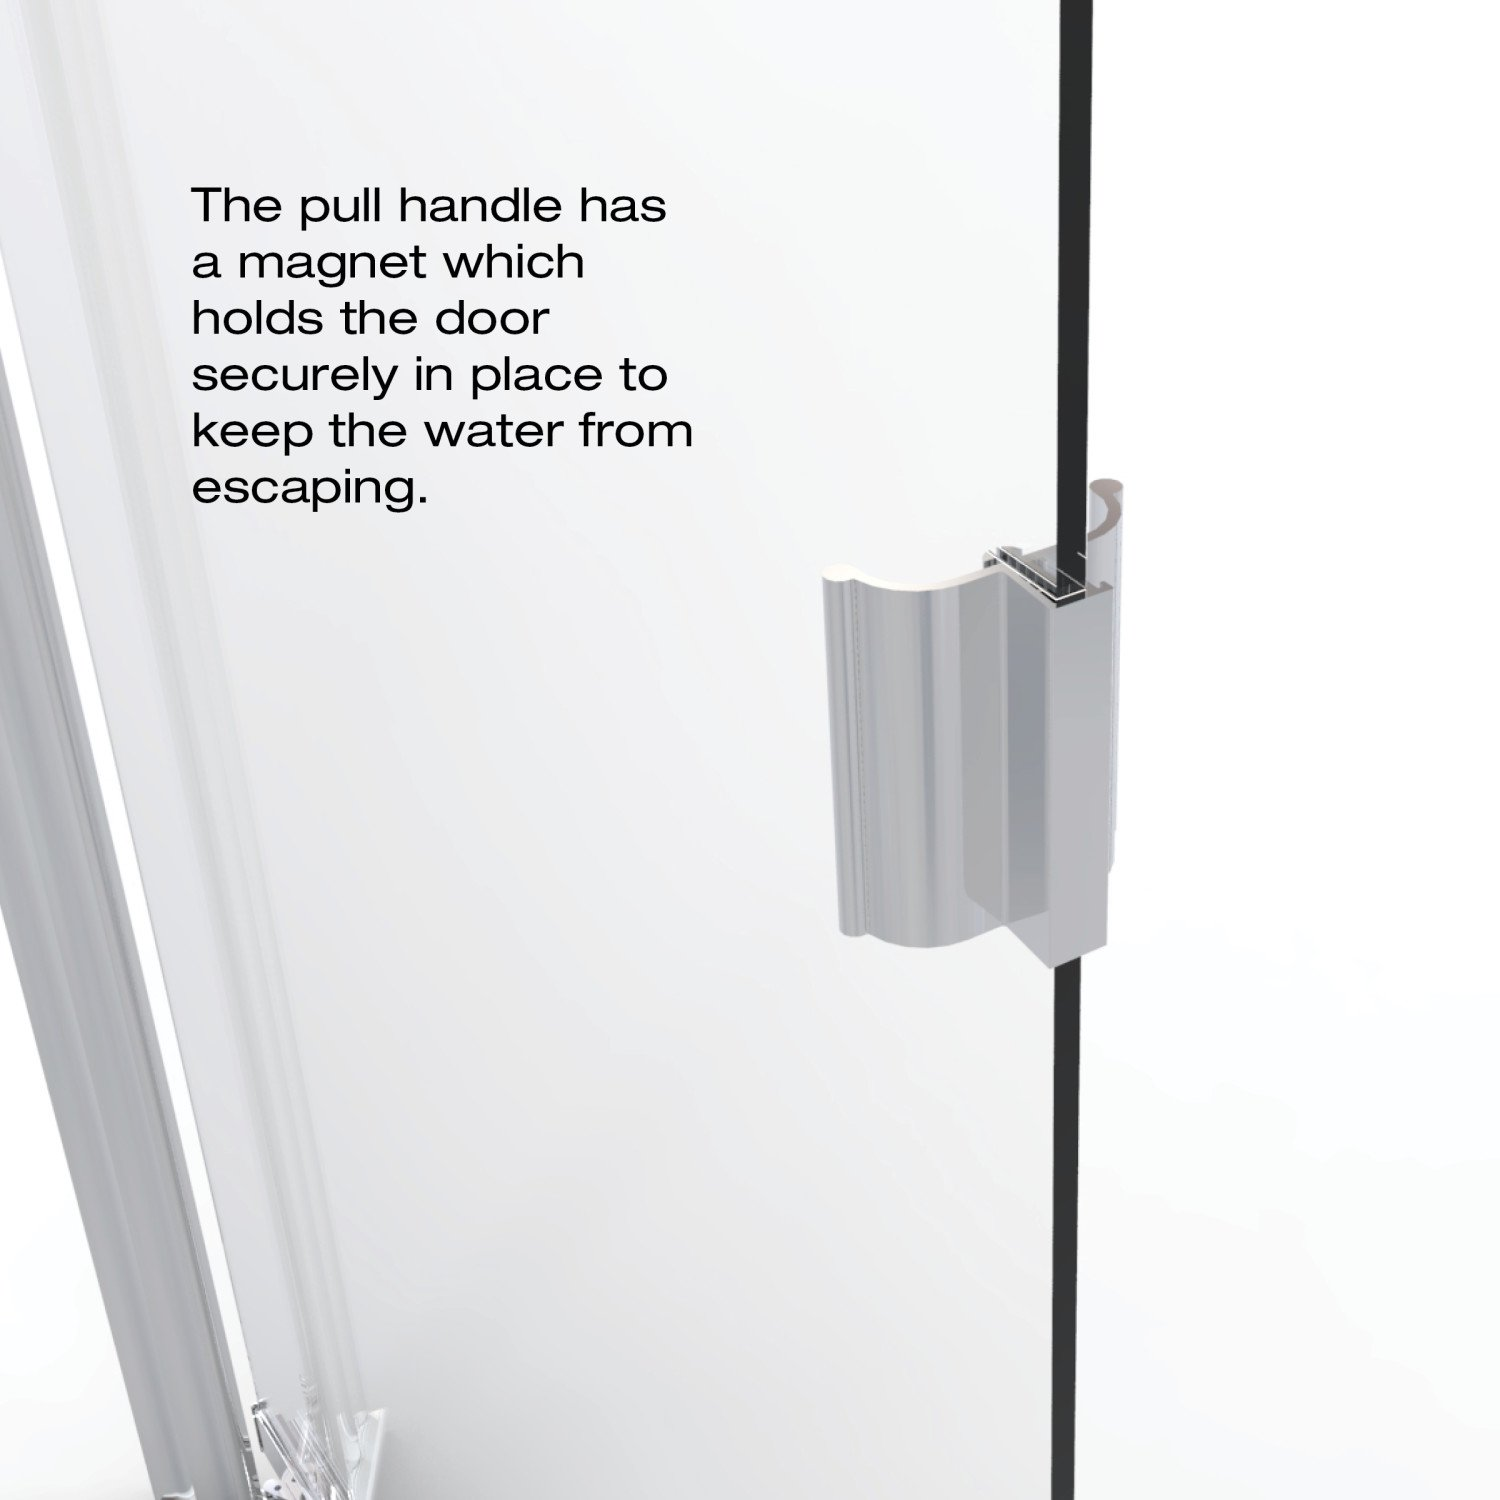 Basco Classic 28.625 to 30.125 in. width, Semi-Frameless Pivot Shower Door, Clear Glass, Silver Finish by Basco Shower Door (Image #6)